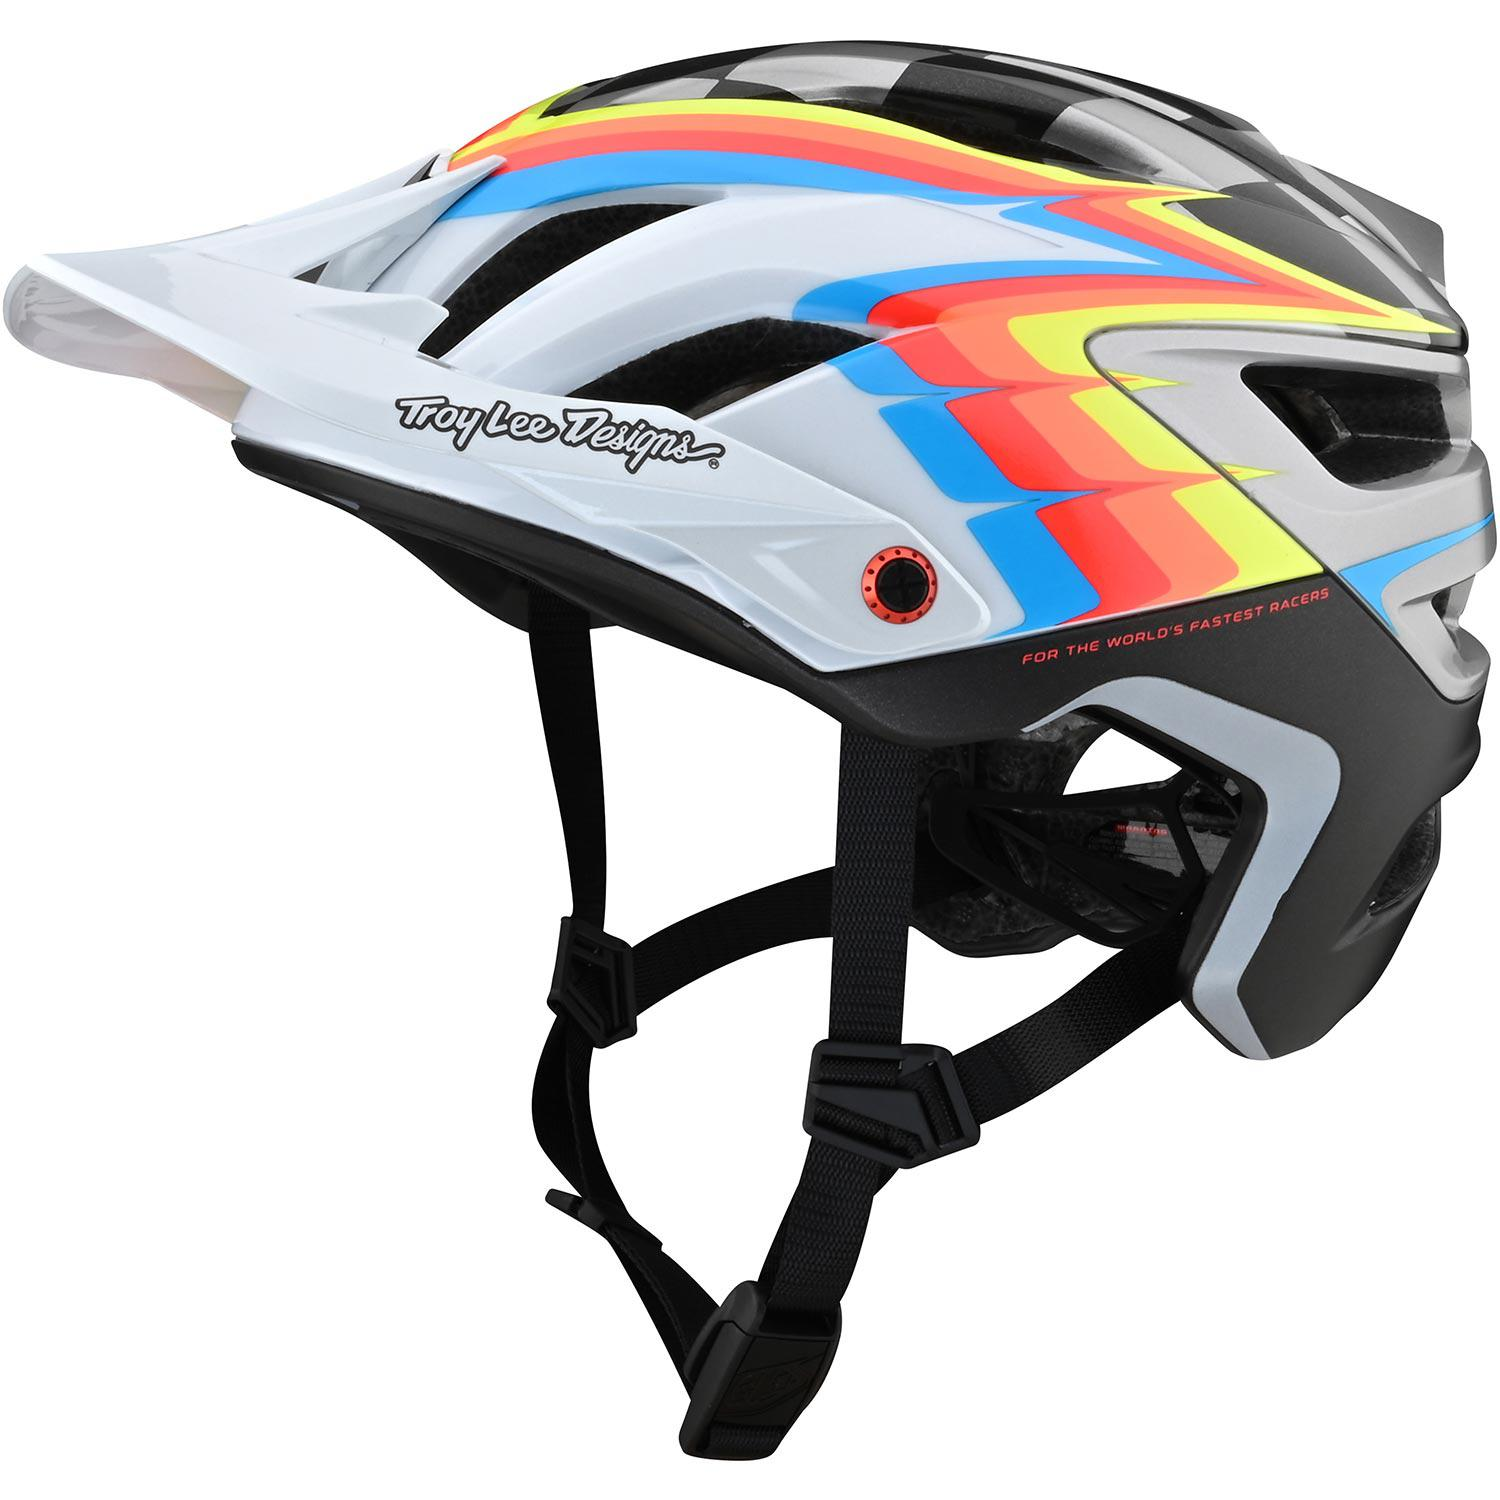 Troy Lee Designs-Troy Lee Designs A3 MIPS Helmet - Born From Paint Limited Edition-Sideways - White/Gray-XS/S-TLD150316001-saddleback-elite-performance-cycling